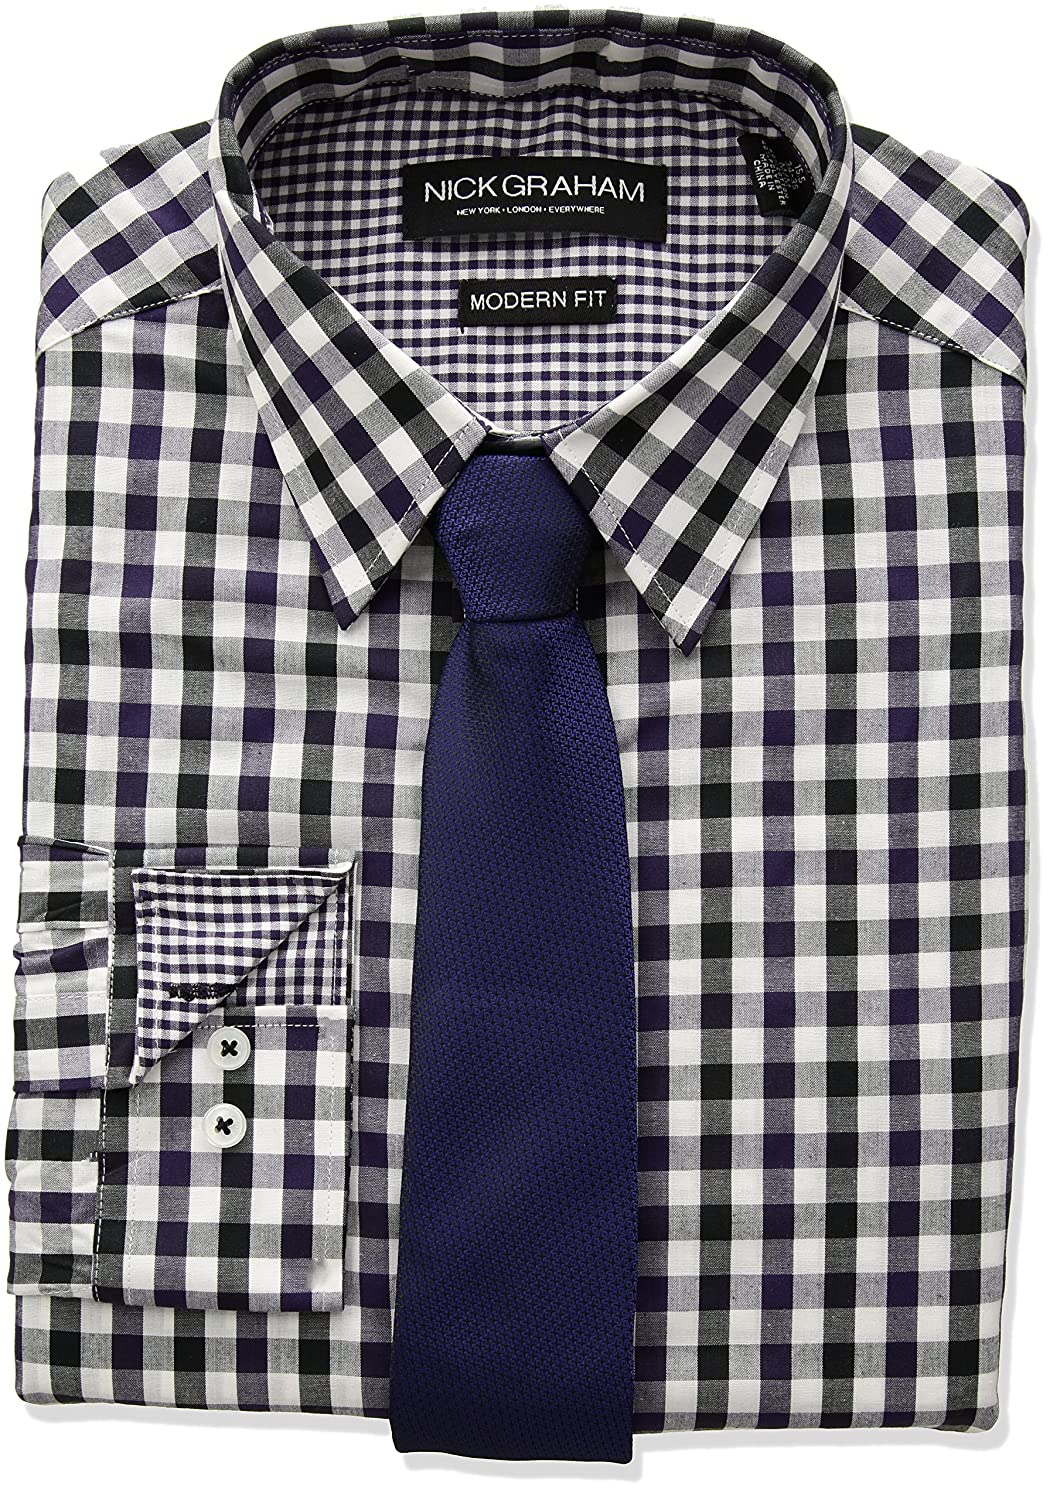 49cb6dab Nick Graham Men's Long Multi Gingham Dress Shirt with Solid Tie Set at  Amazon Men's Clothing store: